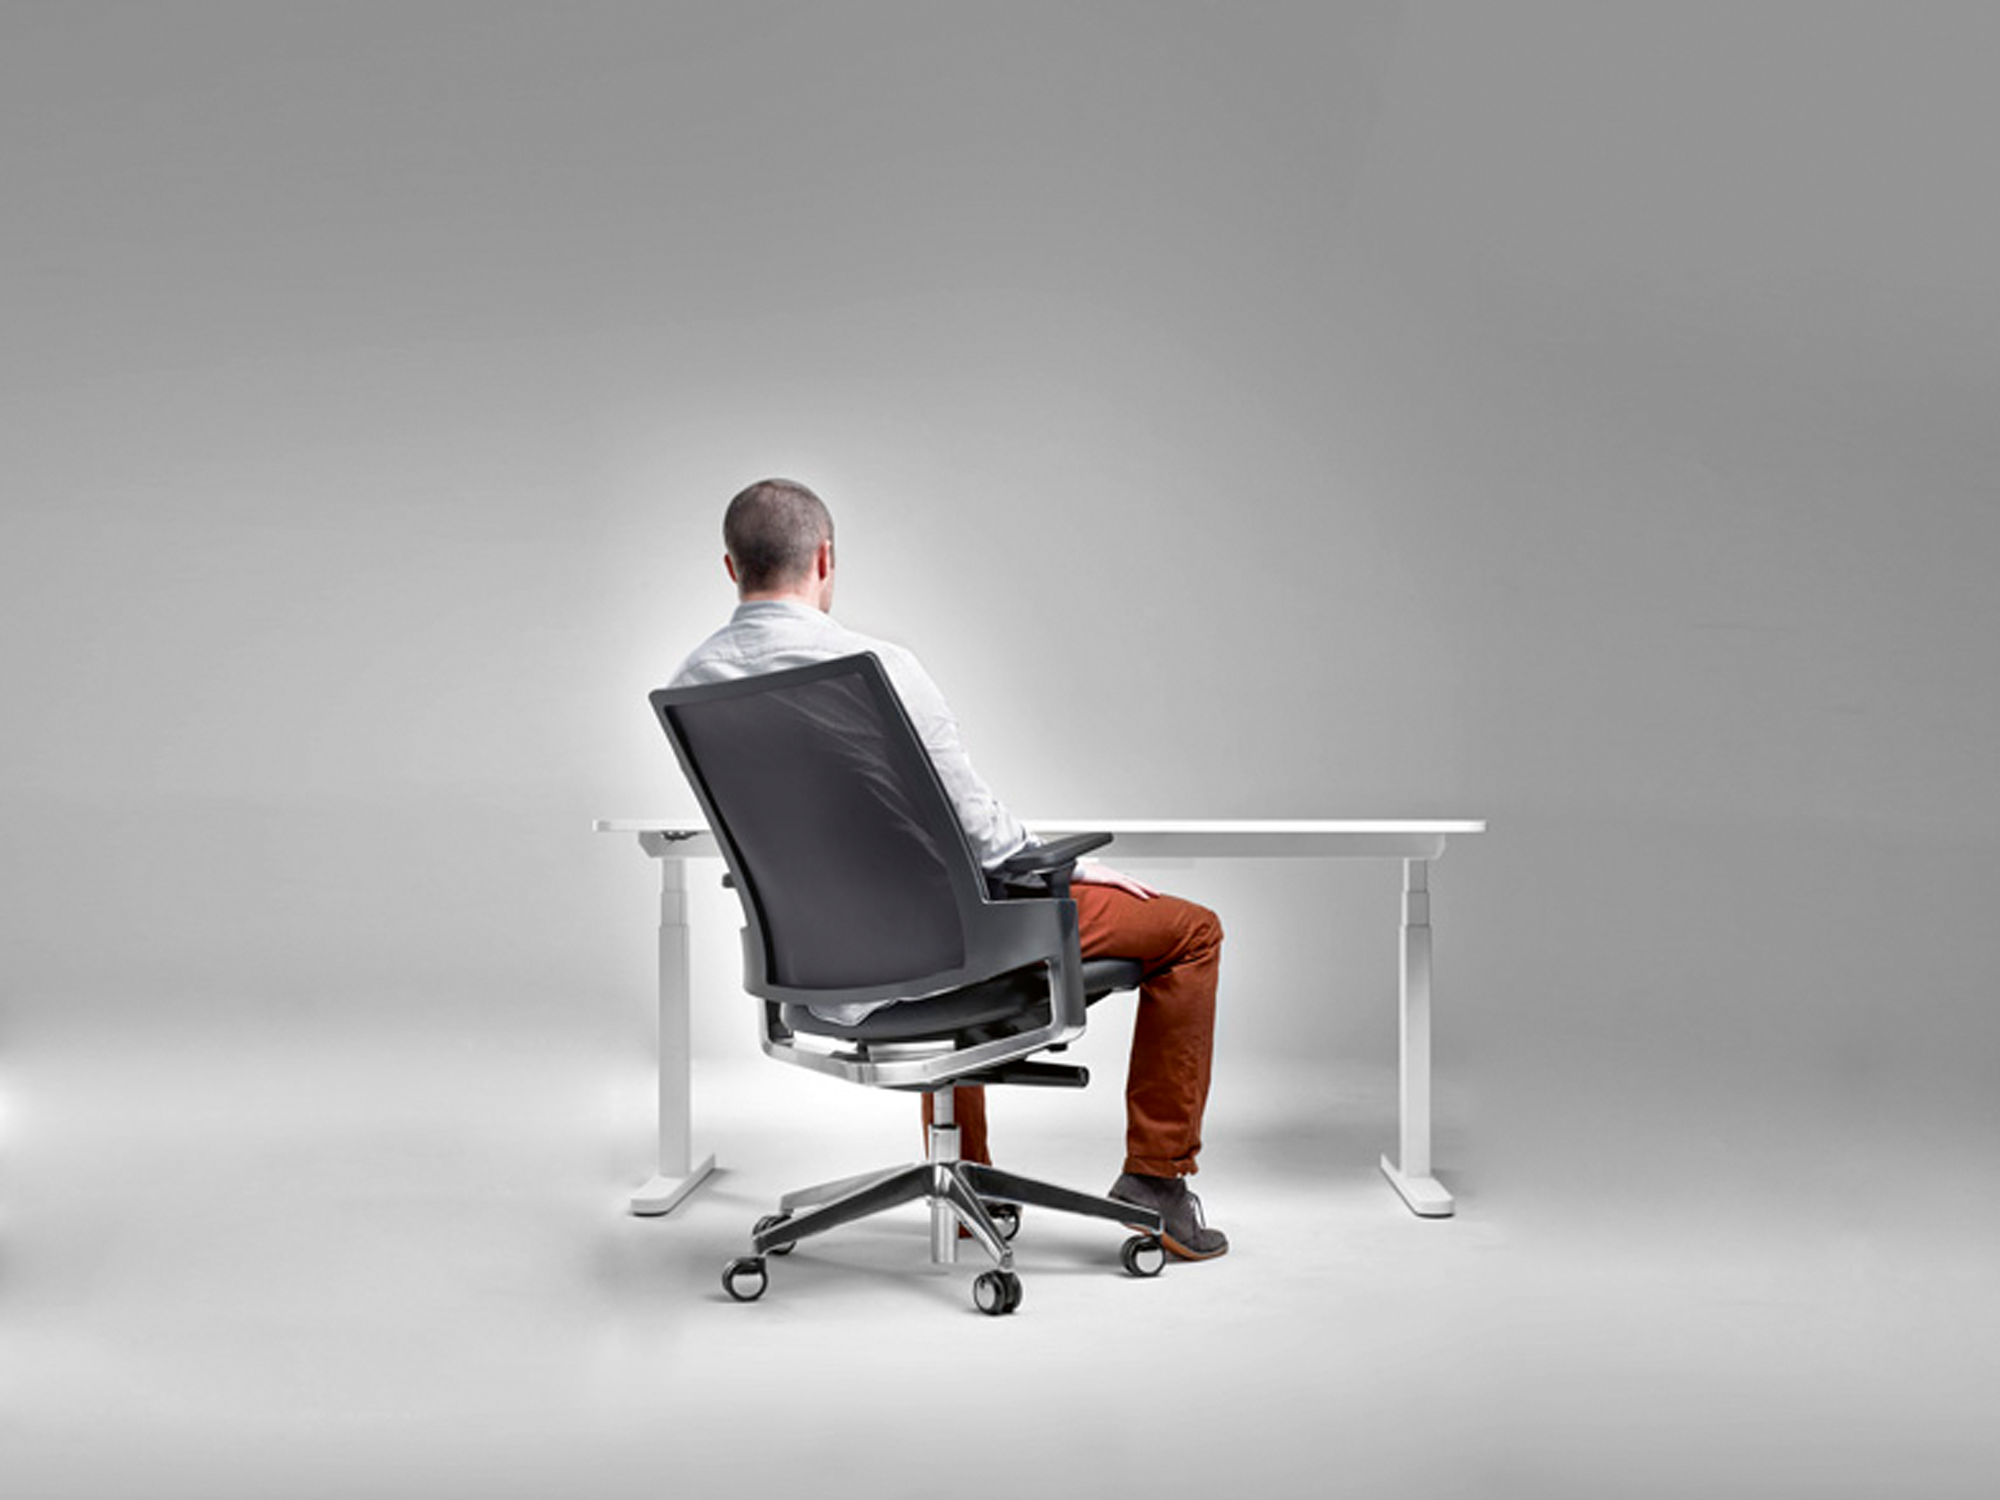 Ergonomic_chair_21.jpg